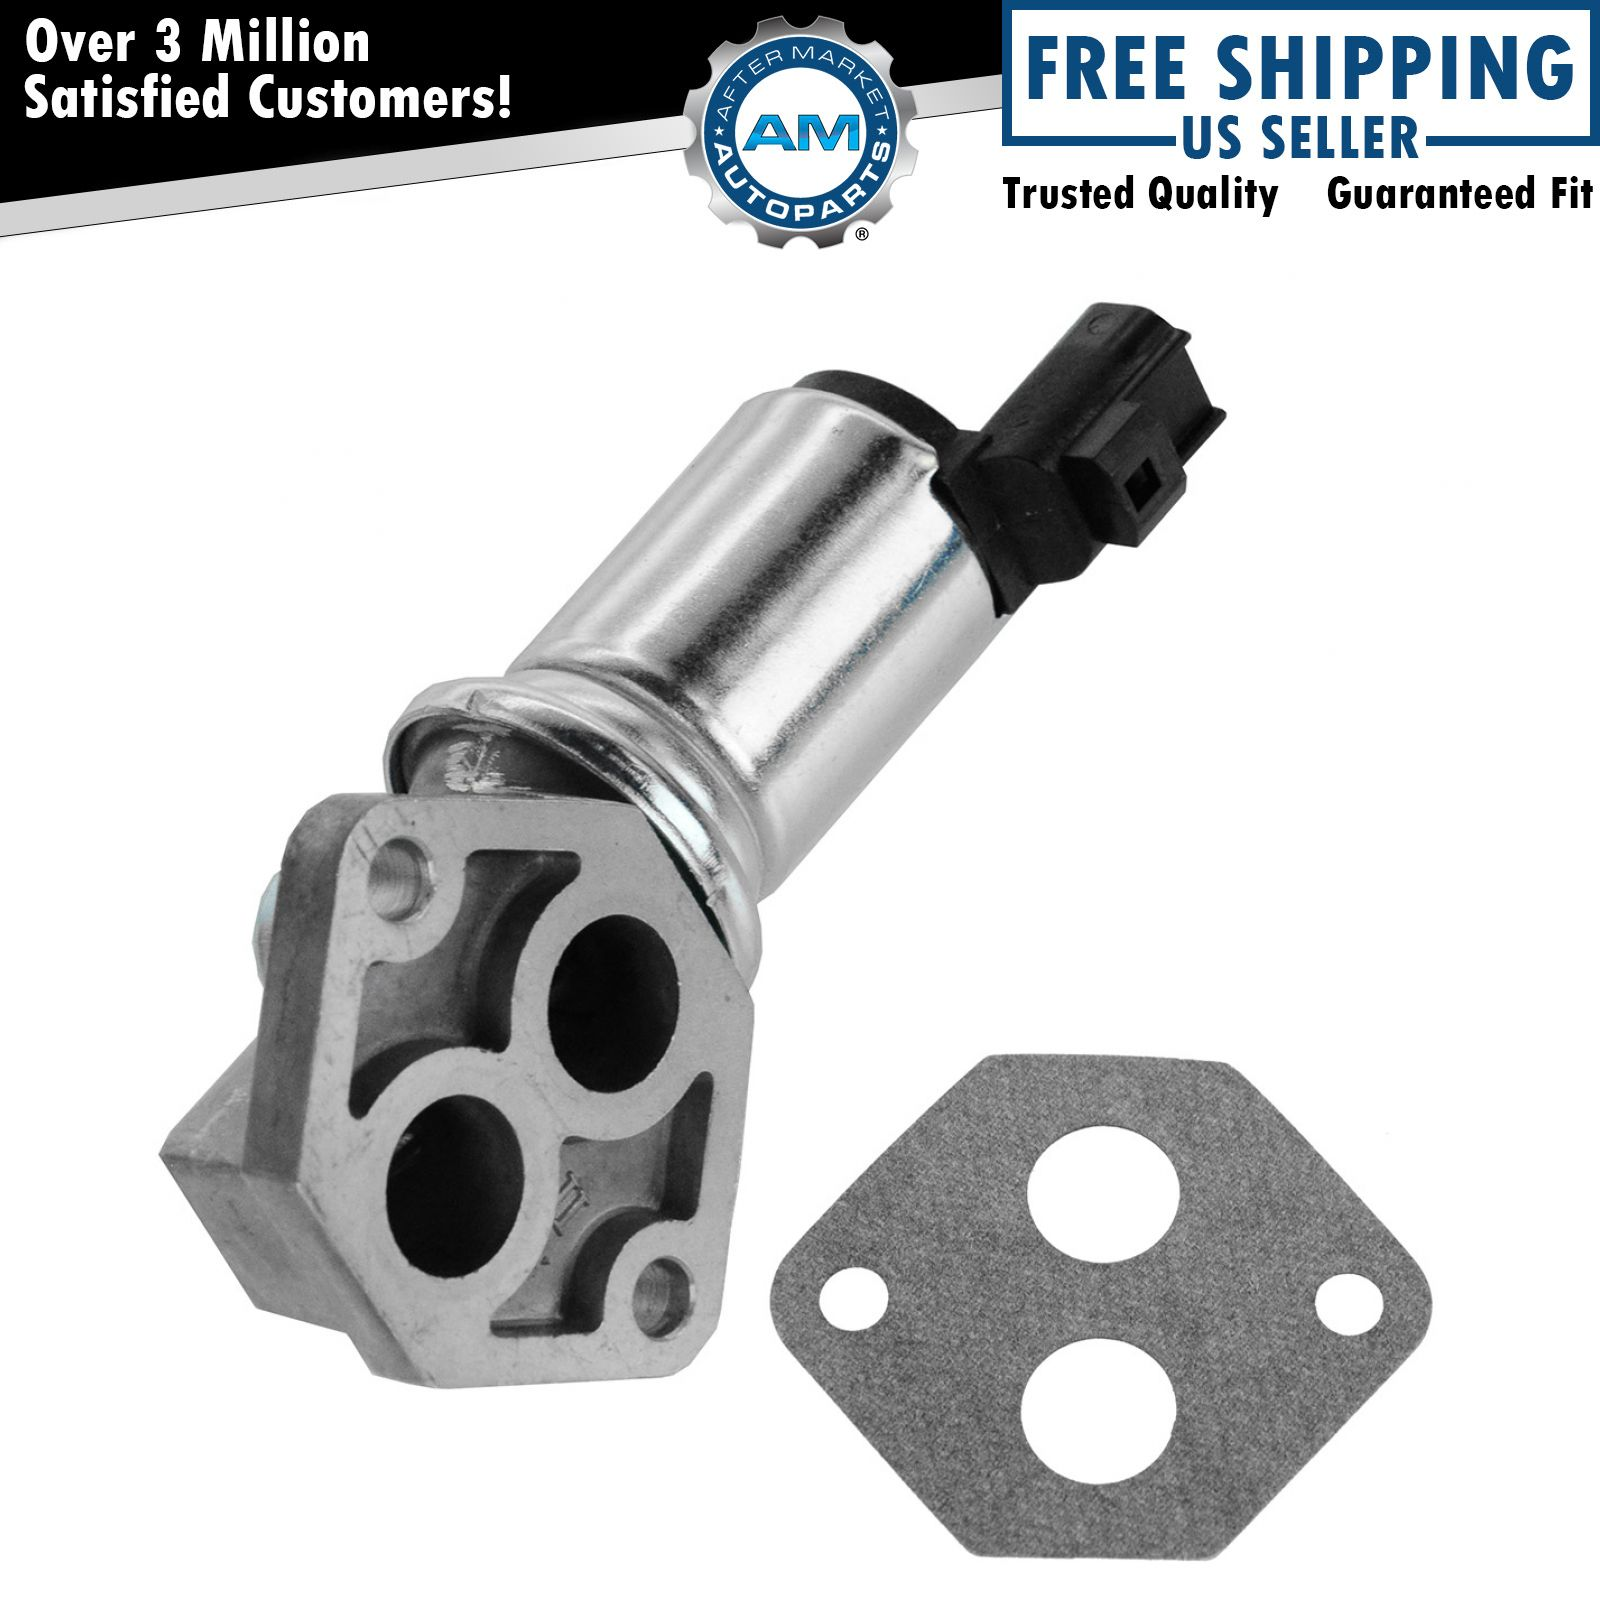 AM 3373184673 idle air control valve ebay on parts com honda accord engine parts  at crackthecode.co